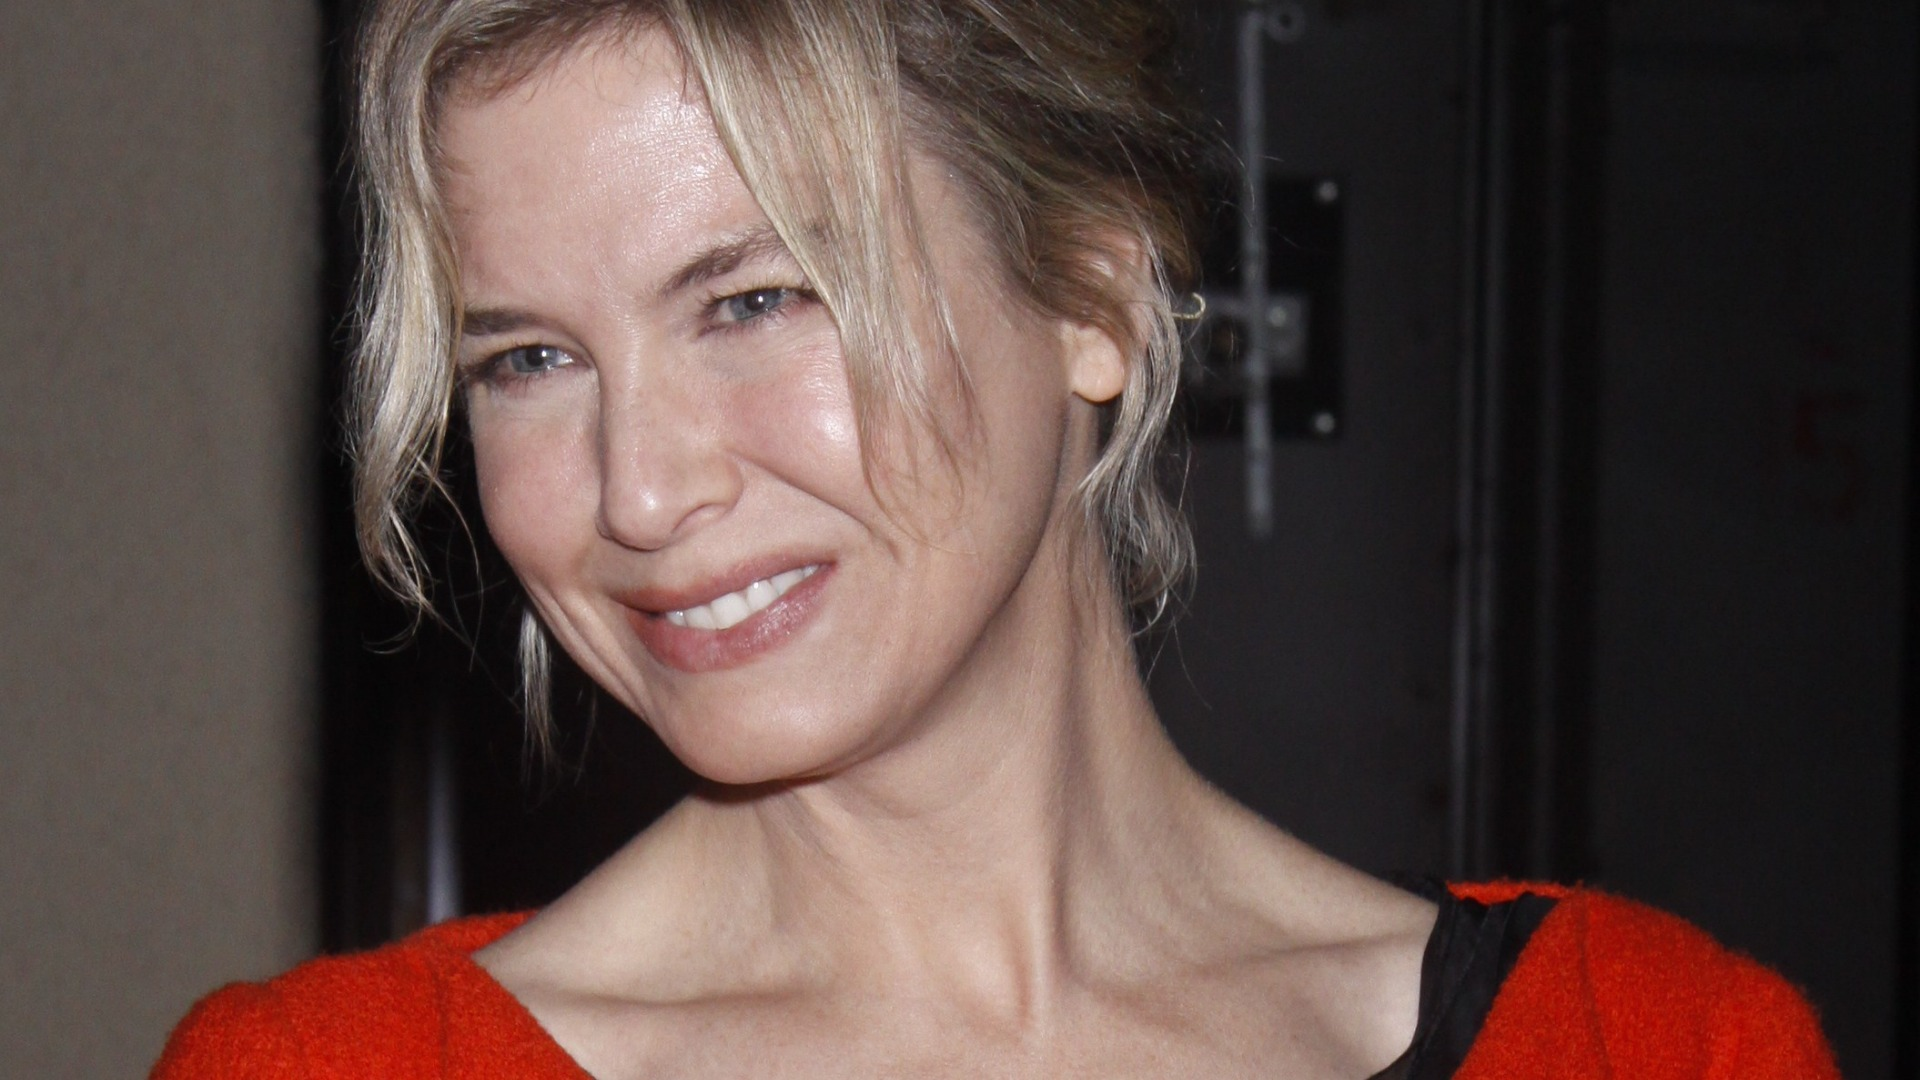 Renee Zellweger HD Wallpapers for desktop download Renee Zellweger